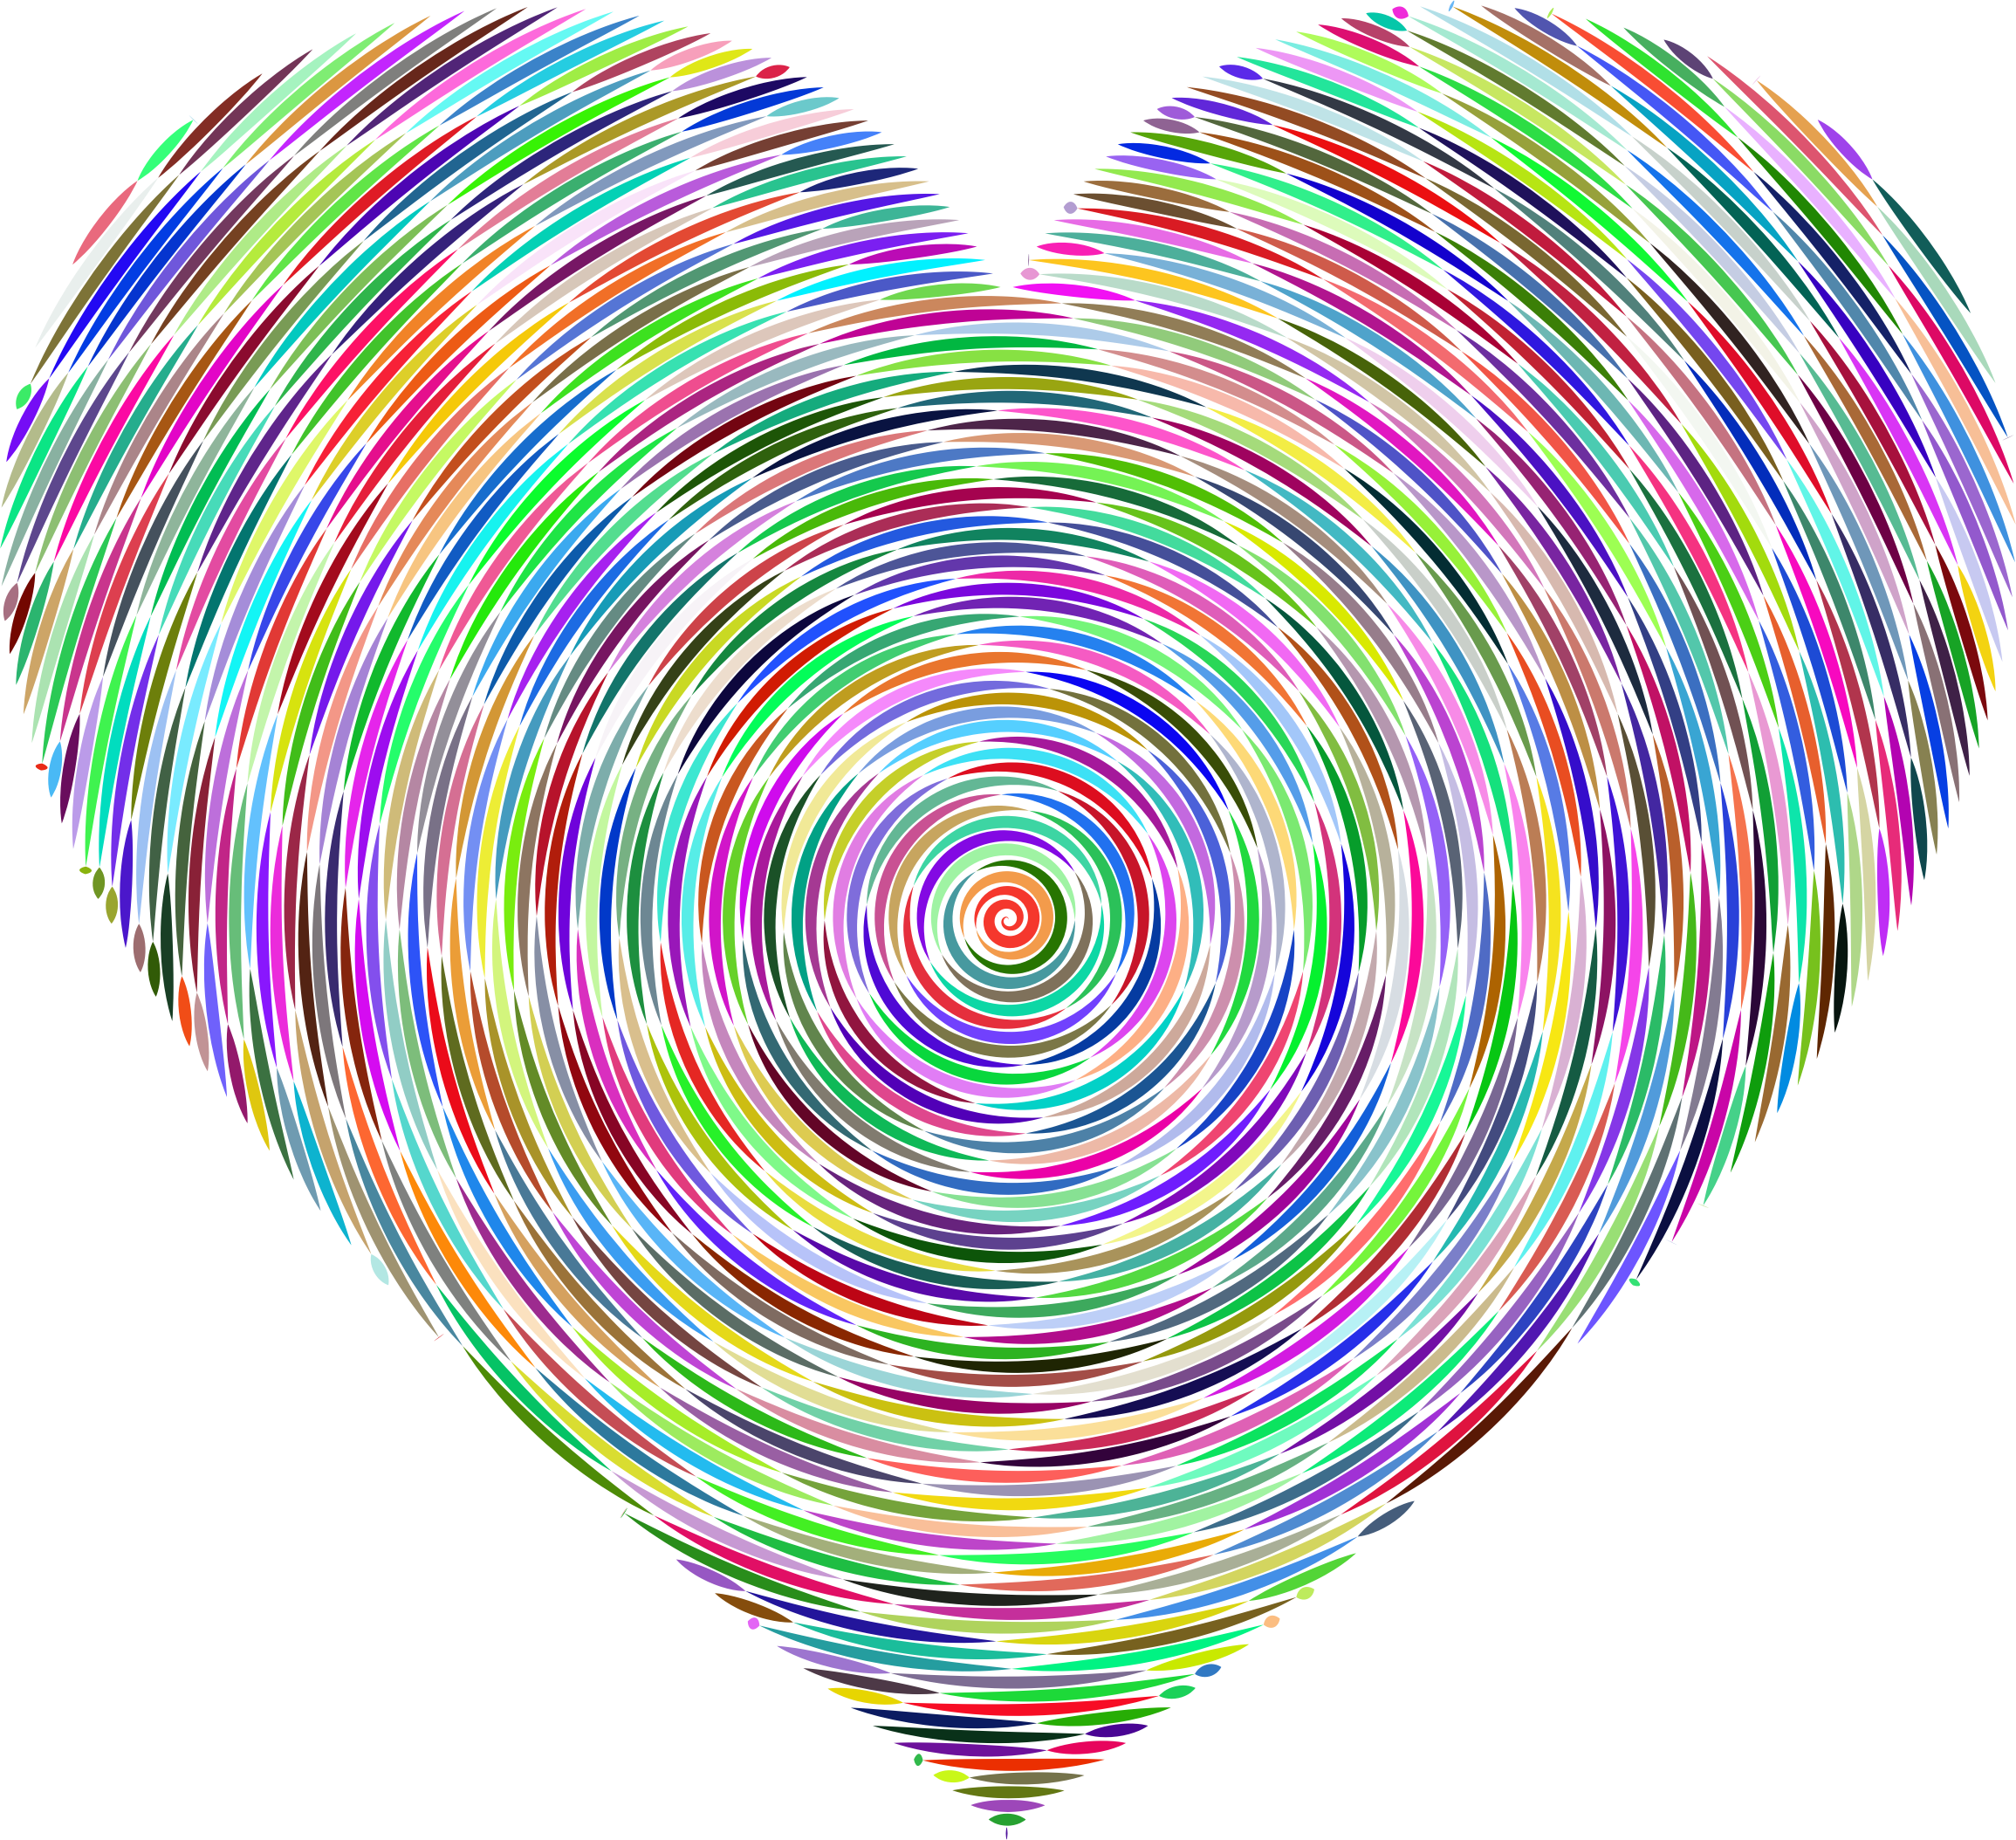 Psychedelic Concentric Heart 2 by GDJ